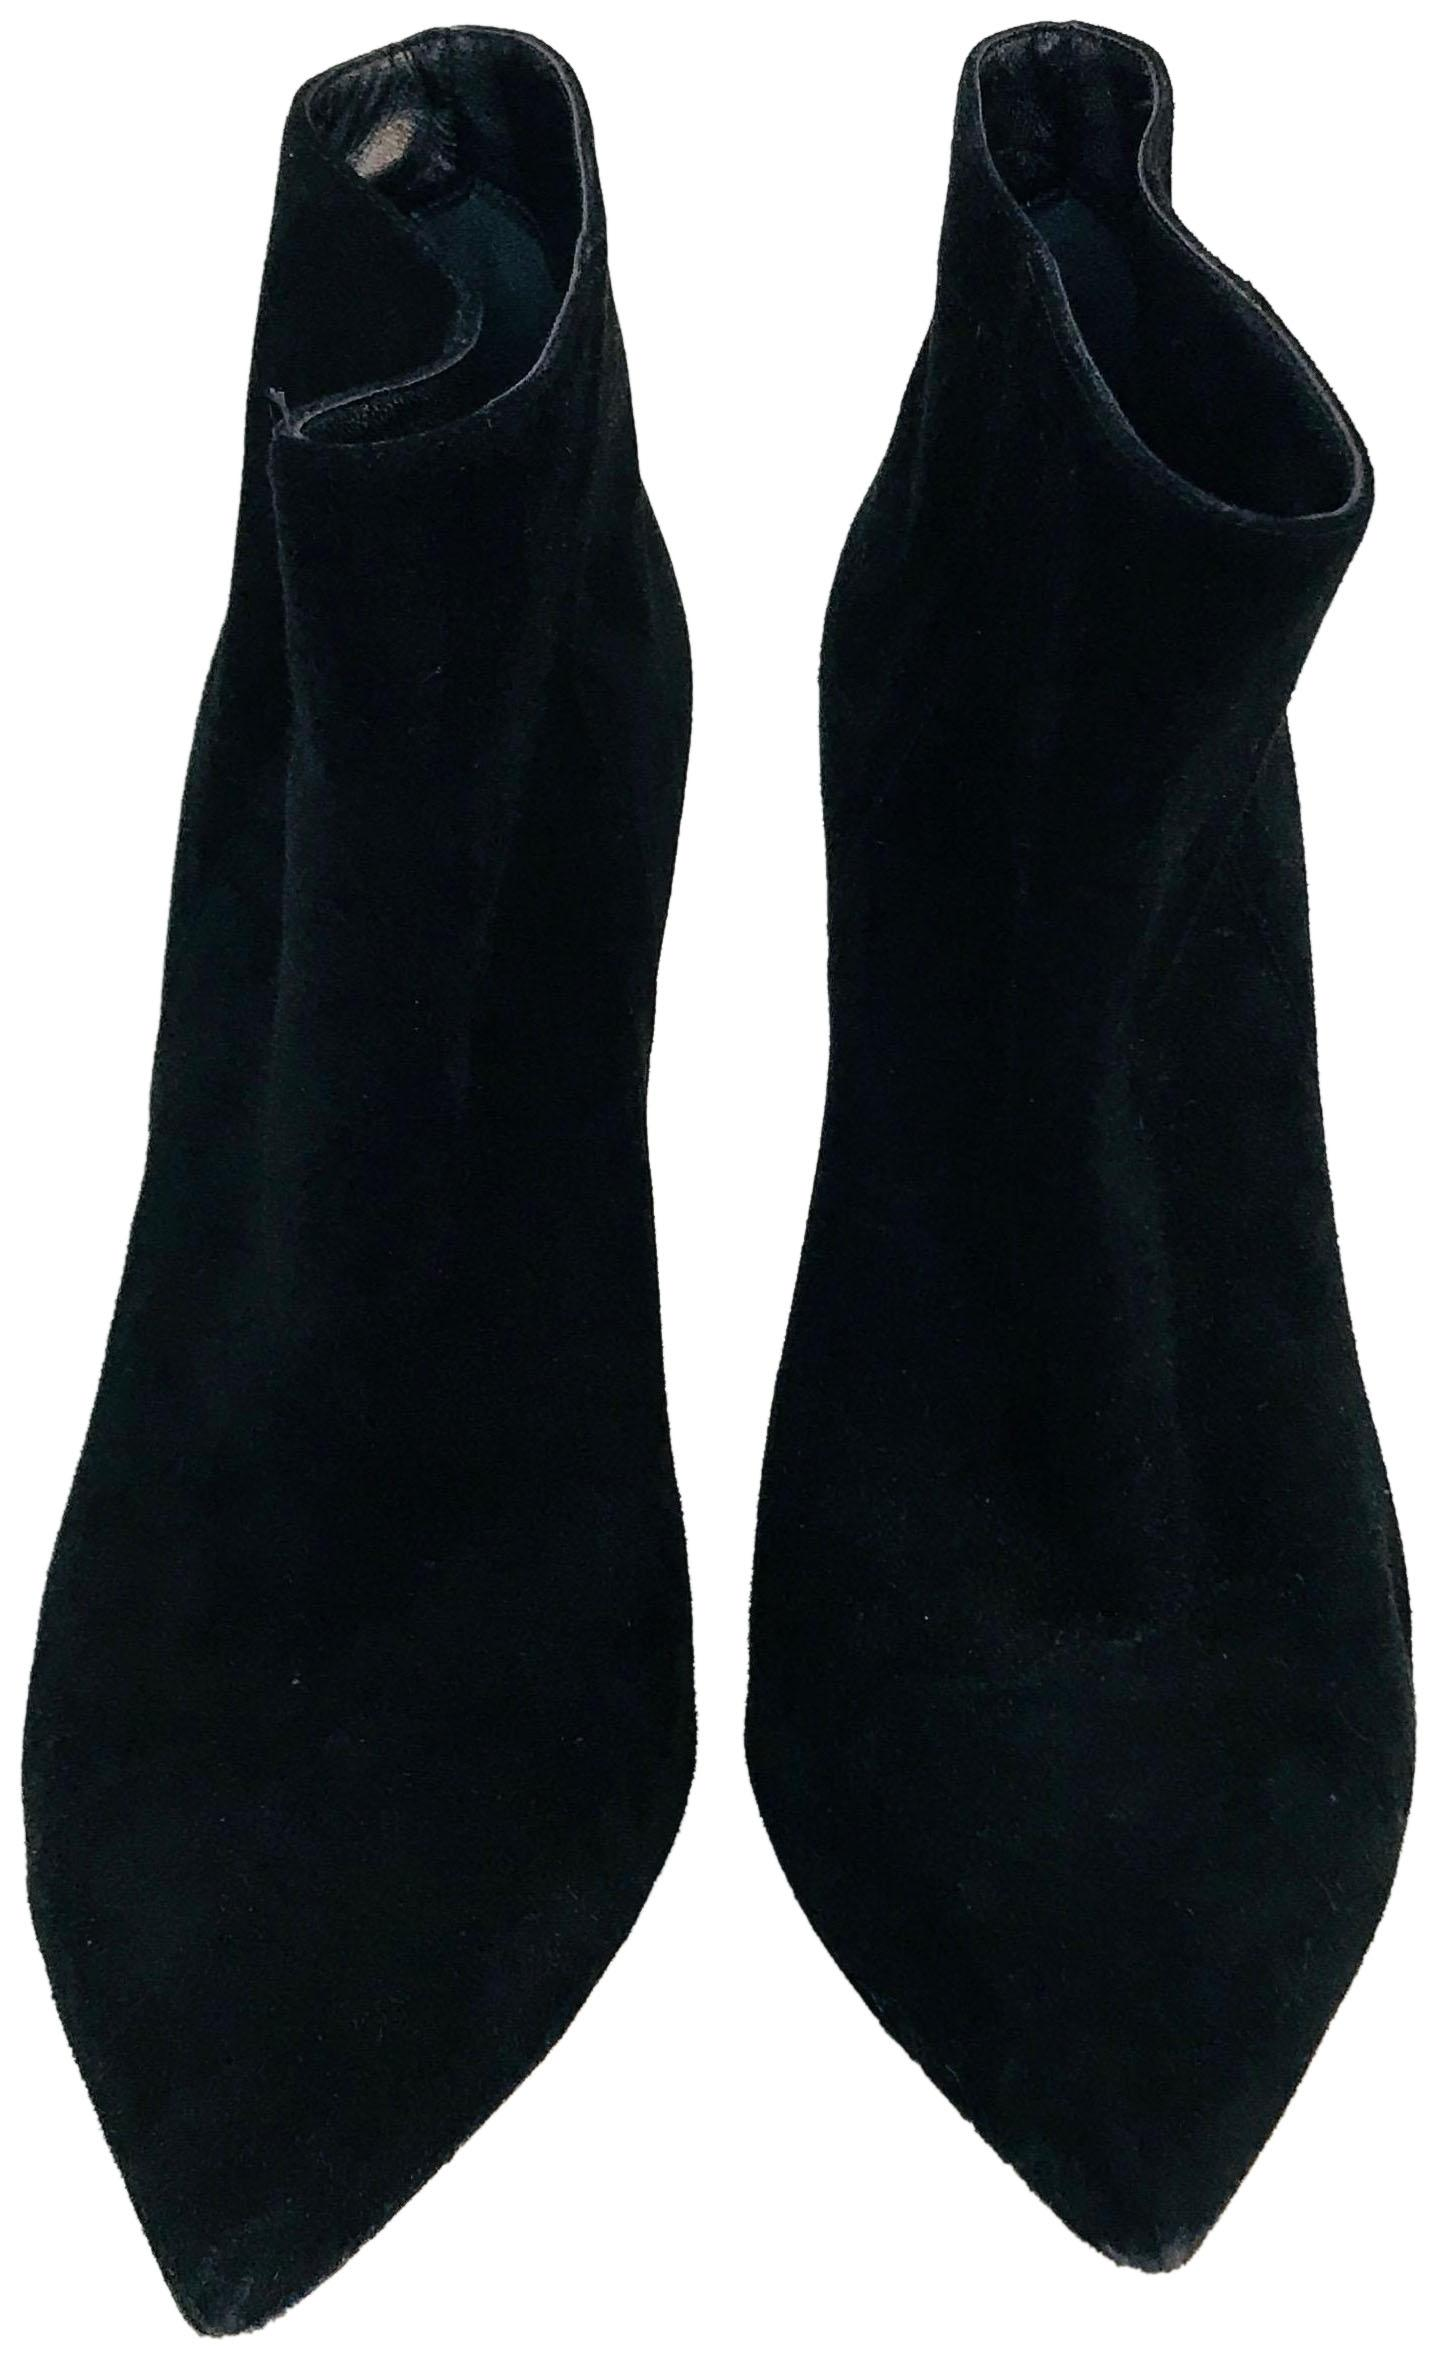 Gianvito Rossi Black Suede Pointed-toe Boots/Booties Size EU 37.5 (Approx. US 7.5) Regular (M, B)